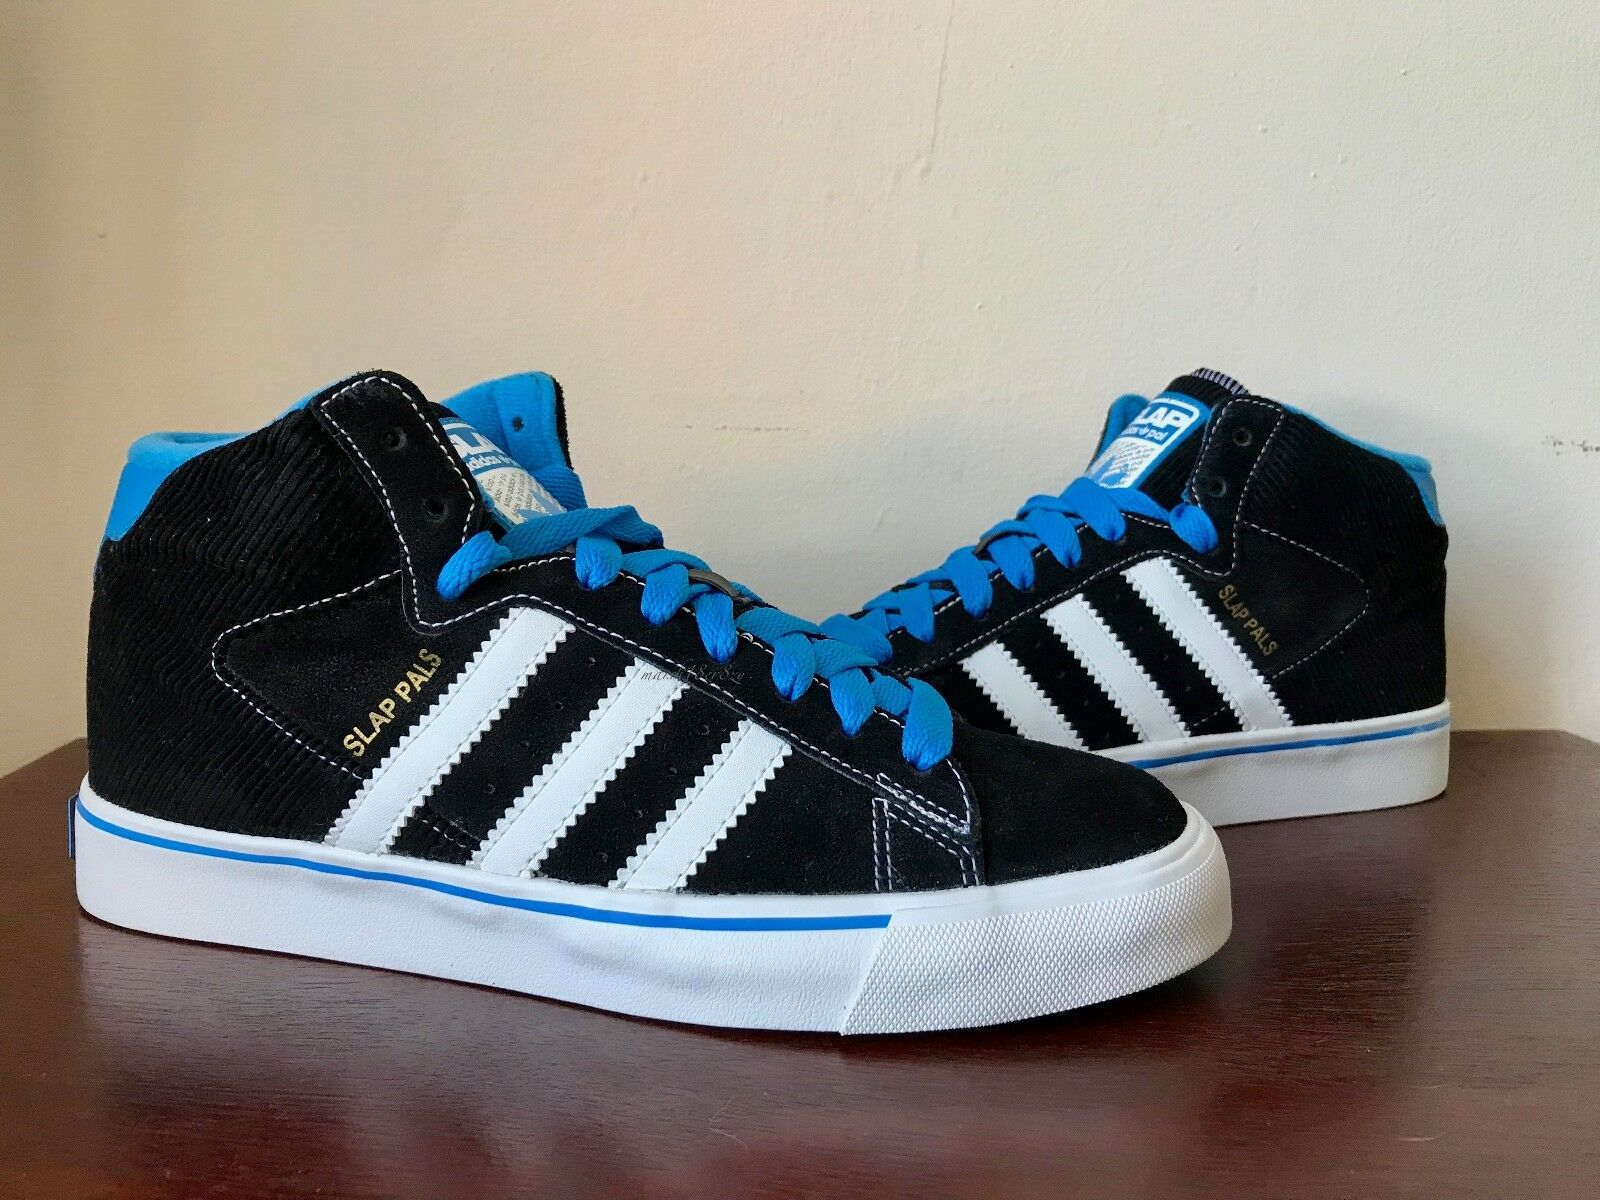 Adidas x  Slap Magazine  Slap Pals  Campus Vulc Mid sz 7 Very Rare From 2009  outlet factory shop